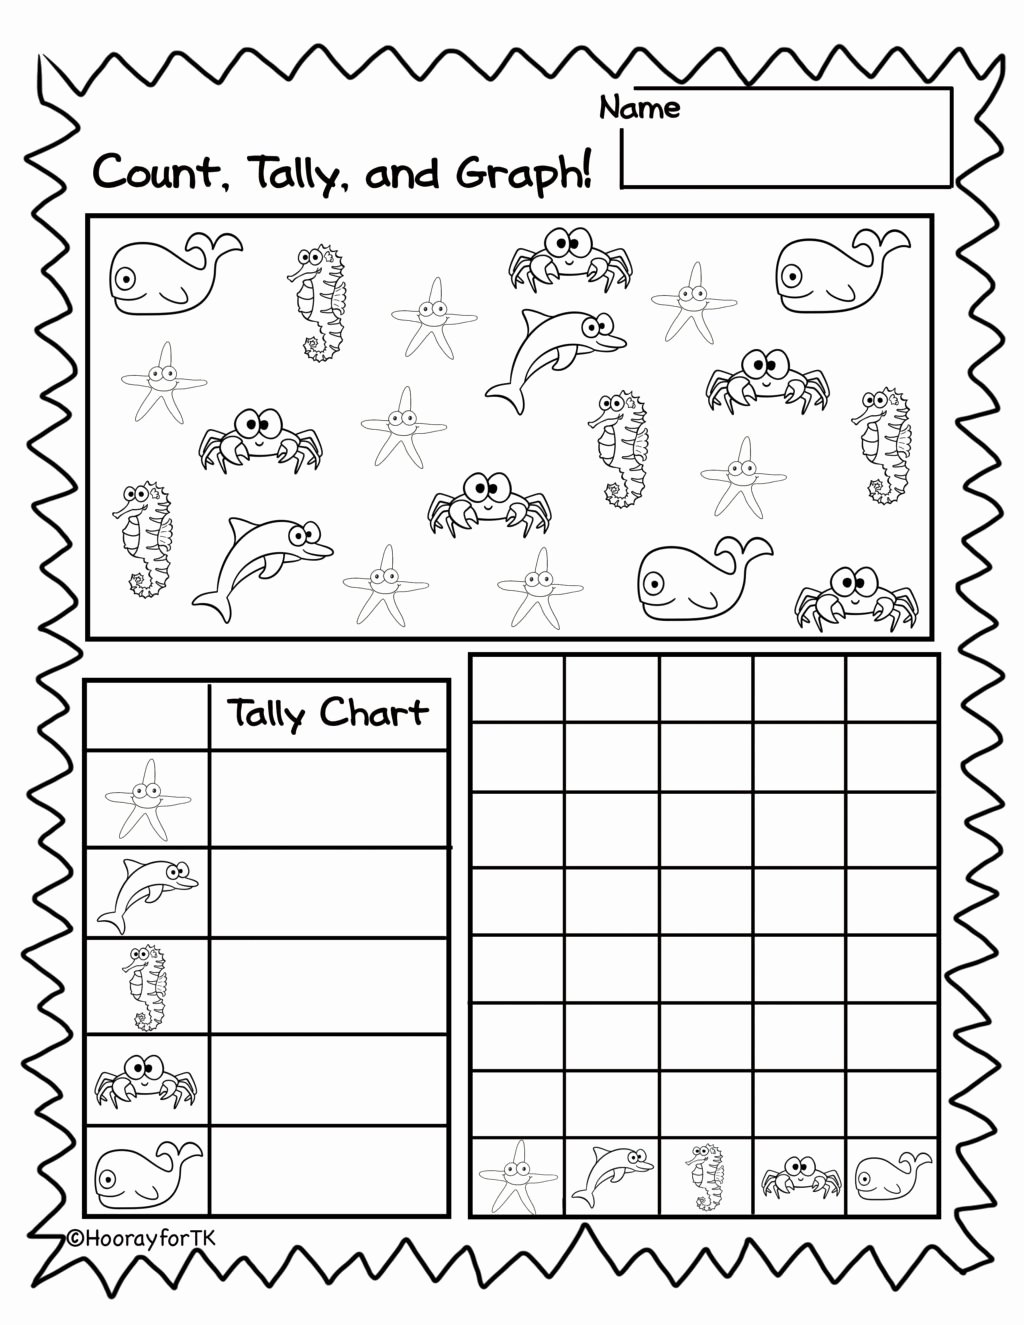 Ocean themed Worksheets for Preschoolers Free Worksheet Pre K Printables Image Ideas Printable Under the